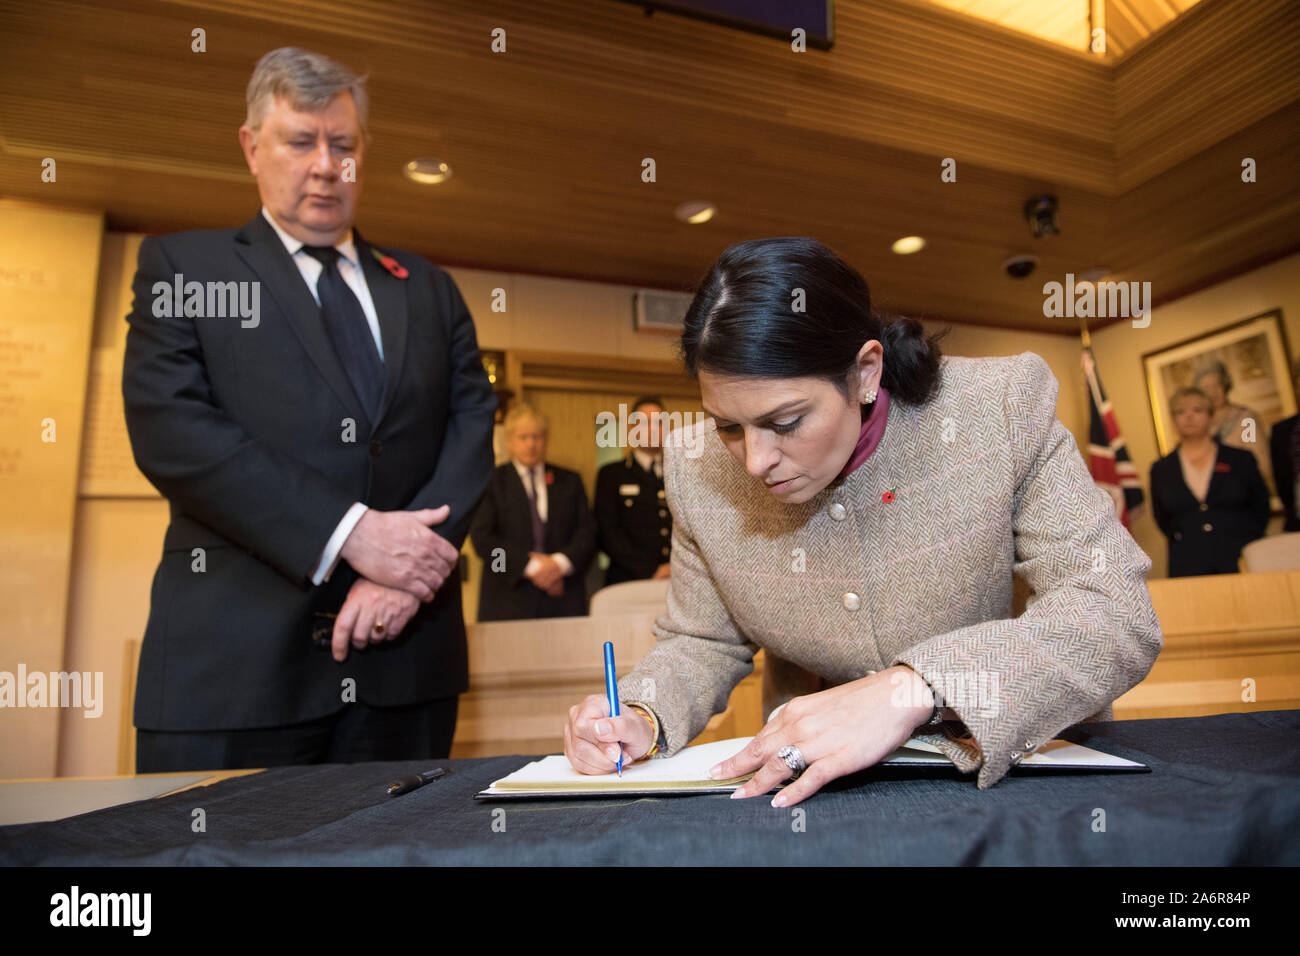 Home Secretary Priti Patel, signs a book of condolence, during a visit to Thurrock Council Offices in Essex after the bodies of 39 people were found in a lorry container last week. Stock Photo